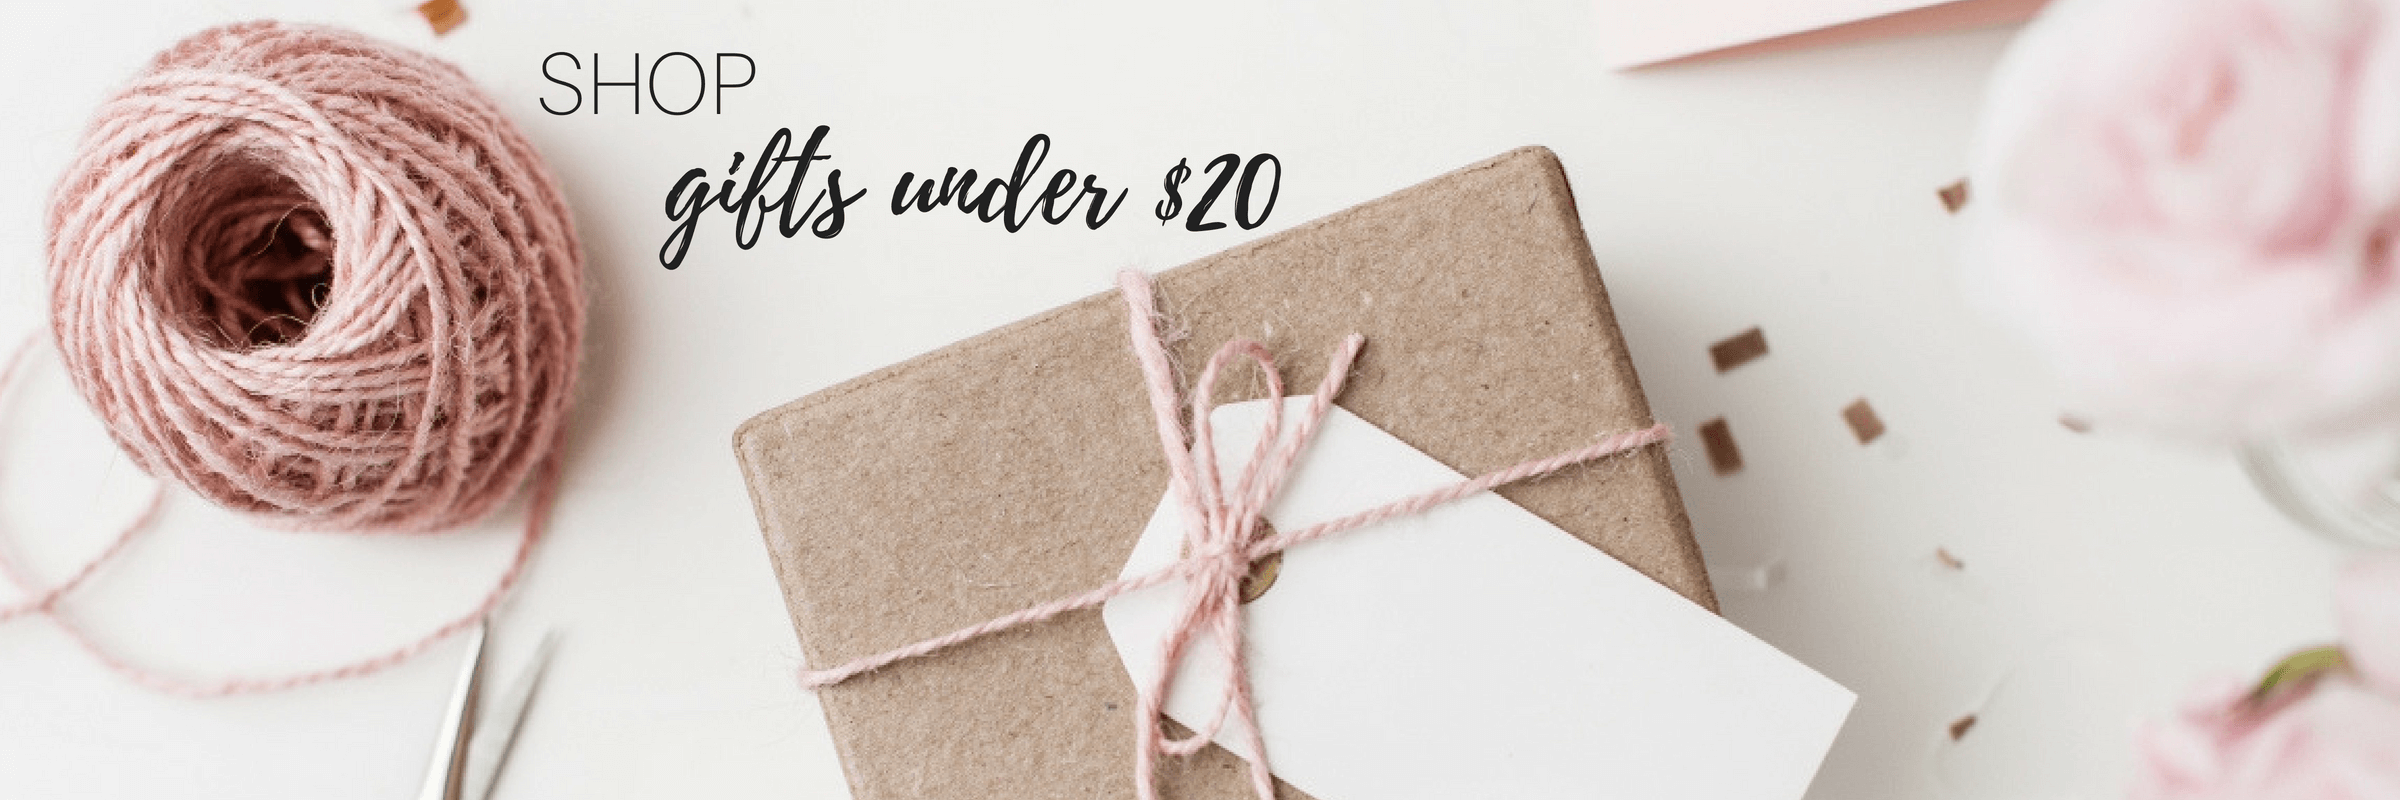 Baking Gifts under $20